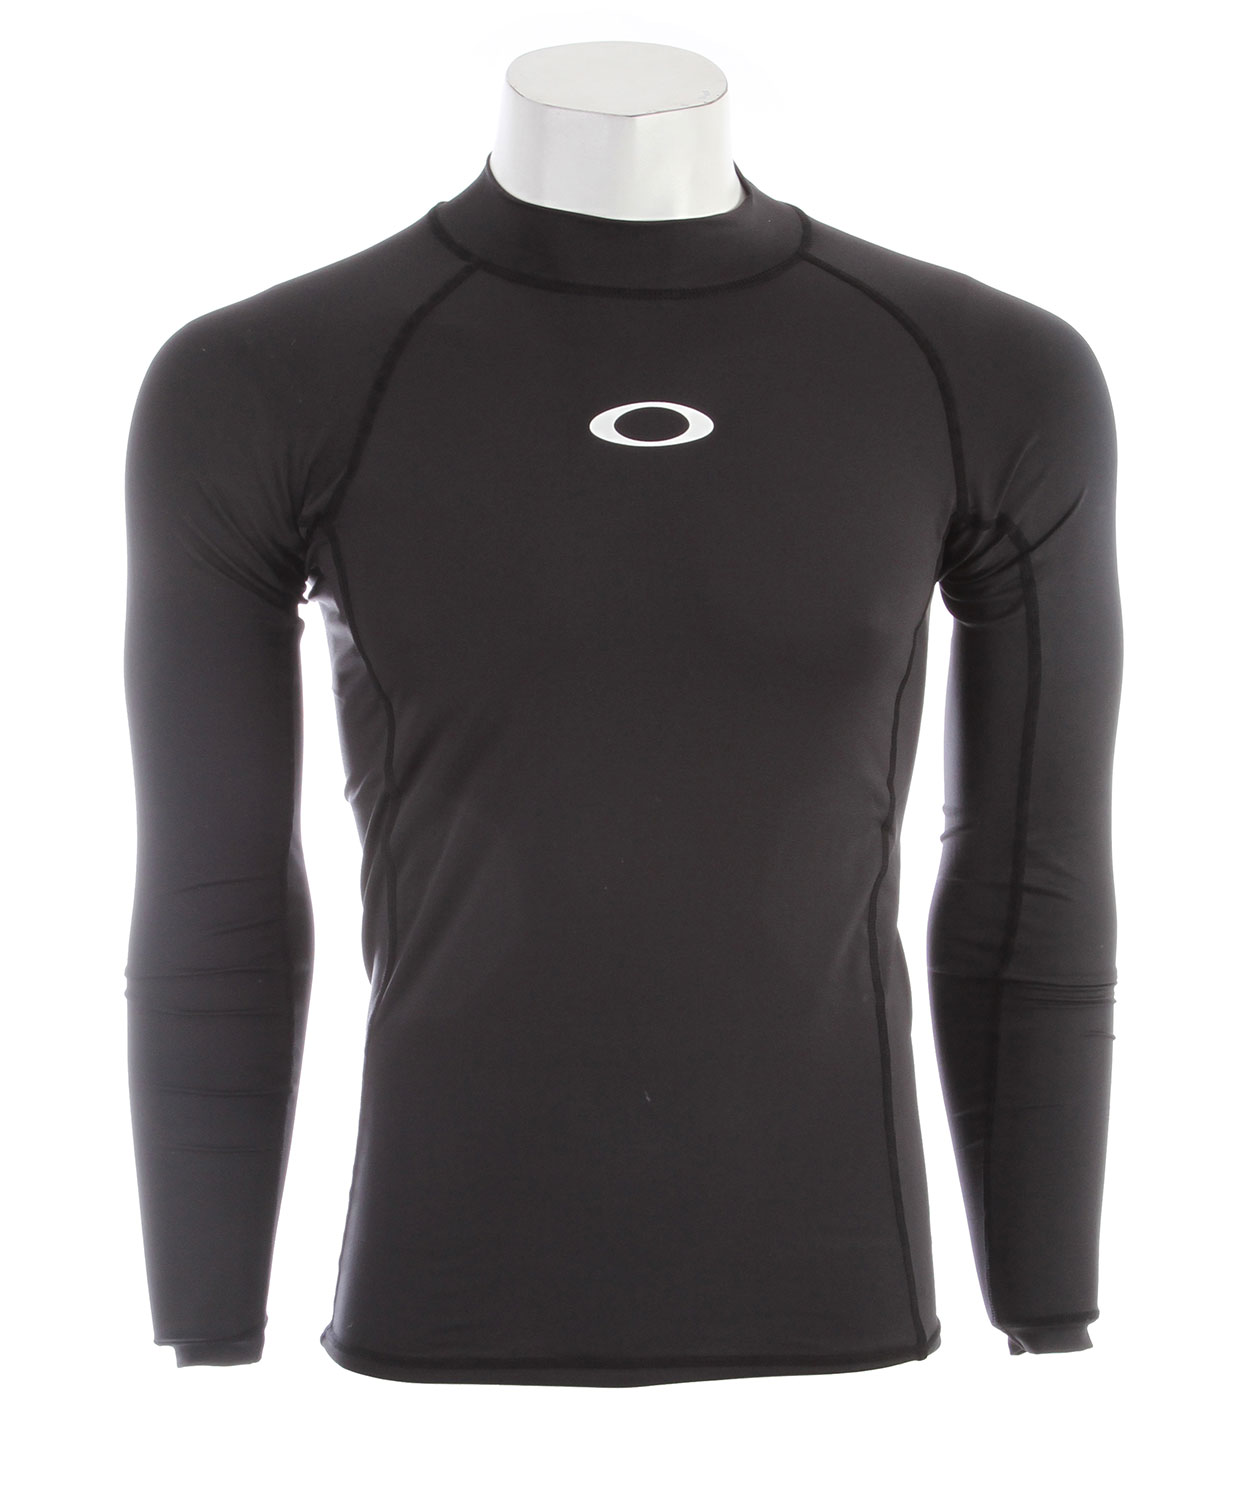 The Long Sleeve Pressure Rashguard protects against the irritations that serious surfers can do without. Designed with a stretchy fabric blend, this color blocked rashguard lets you move in style and without restriction in a snug mock neck cutKey Features of the Oakley LS Pressure Rashguard: Quick?drying stretch fabric delivers lightweight comfort and freedom of movement UV+ 50 fabric keeps you protected in and out of the water 88% polyester / 12% spandex Fit: Regular - $40.00